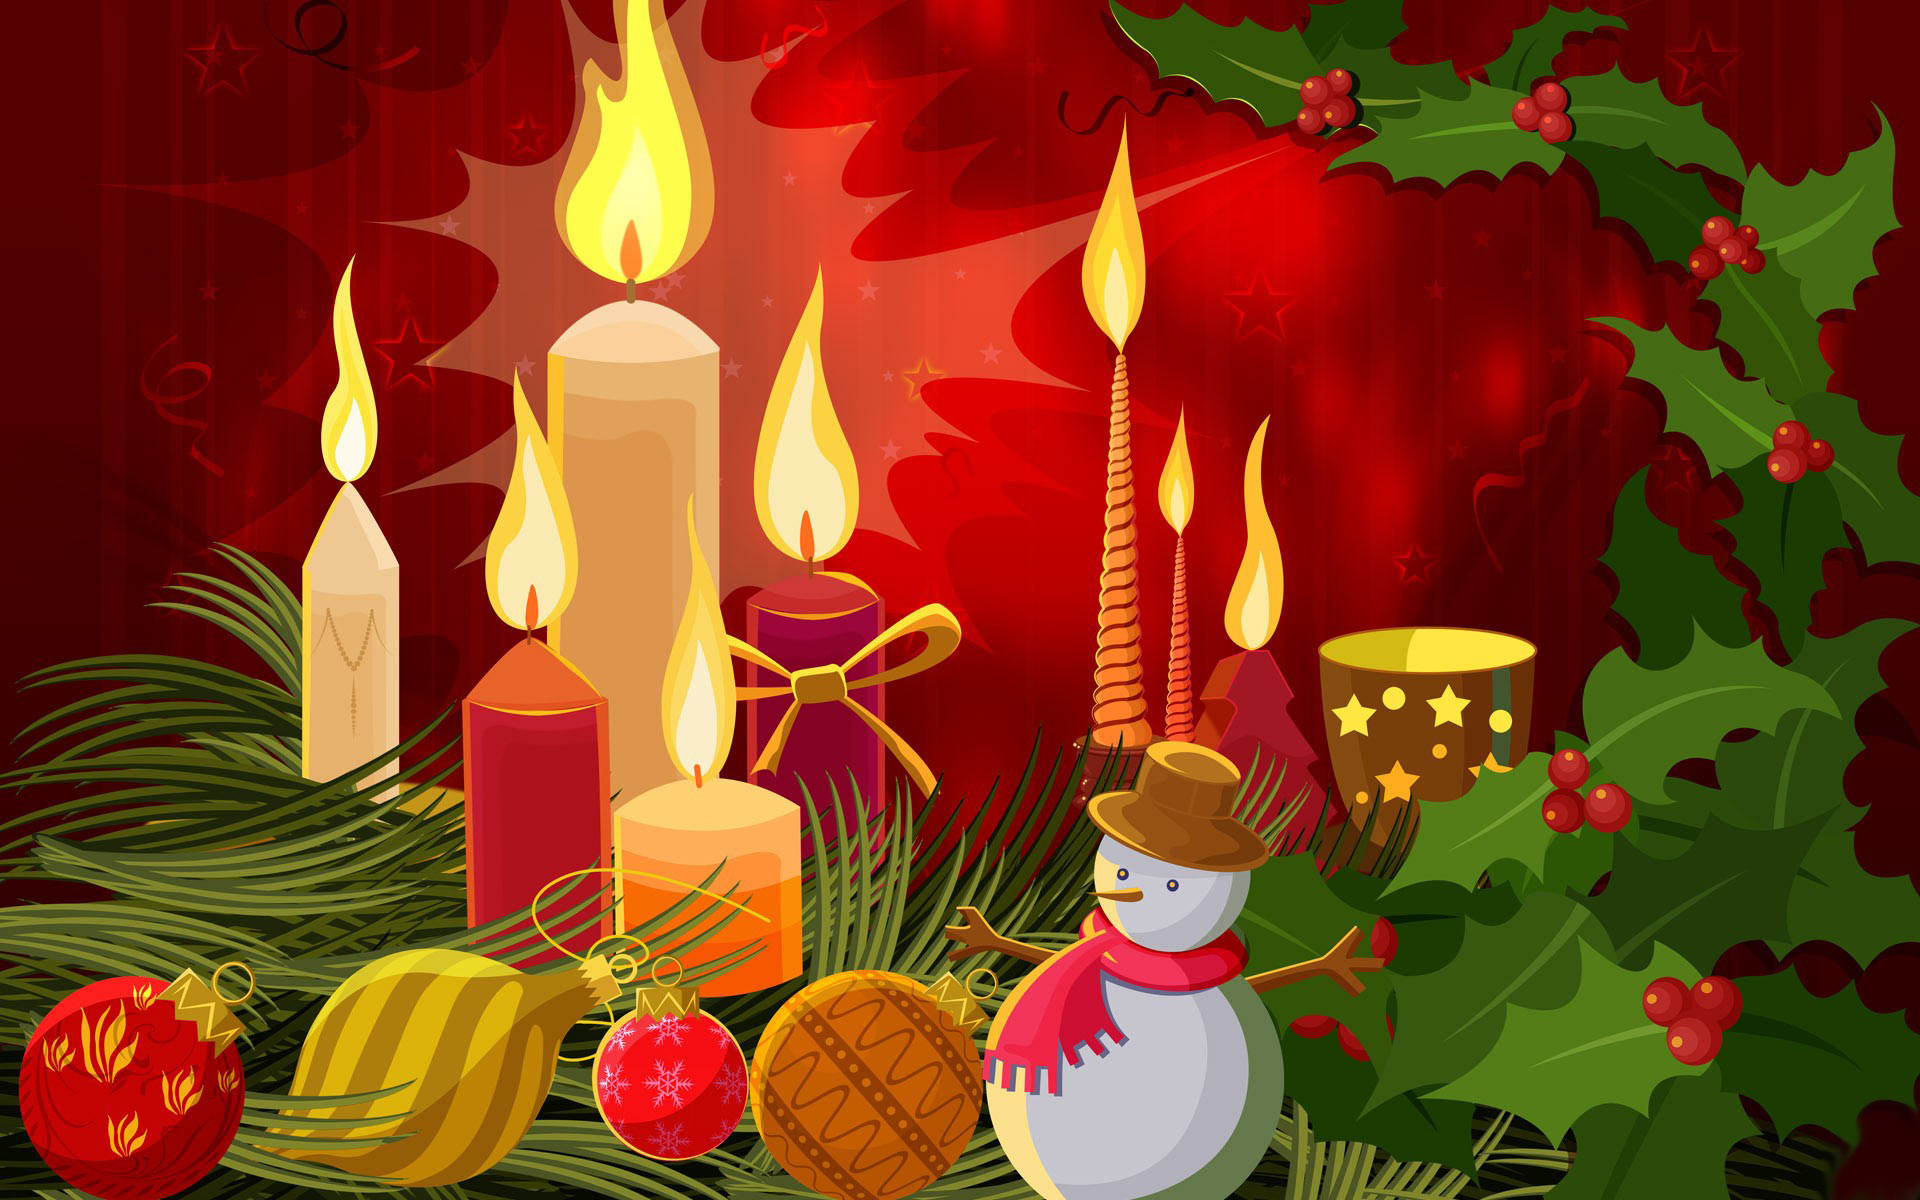 1920x1200 Easy Steps To Find Animated Christmas Wallpapers Free Download : Wallpapers for Desktop with winter,